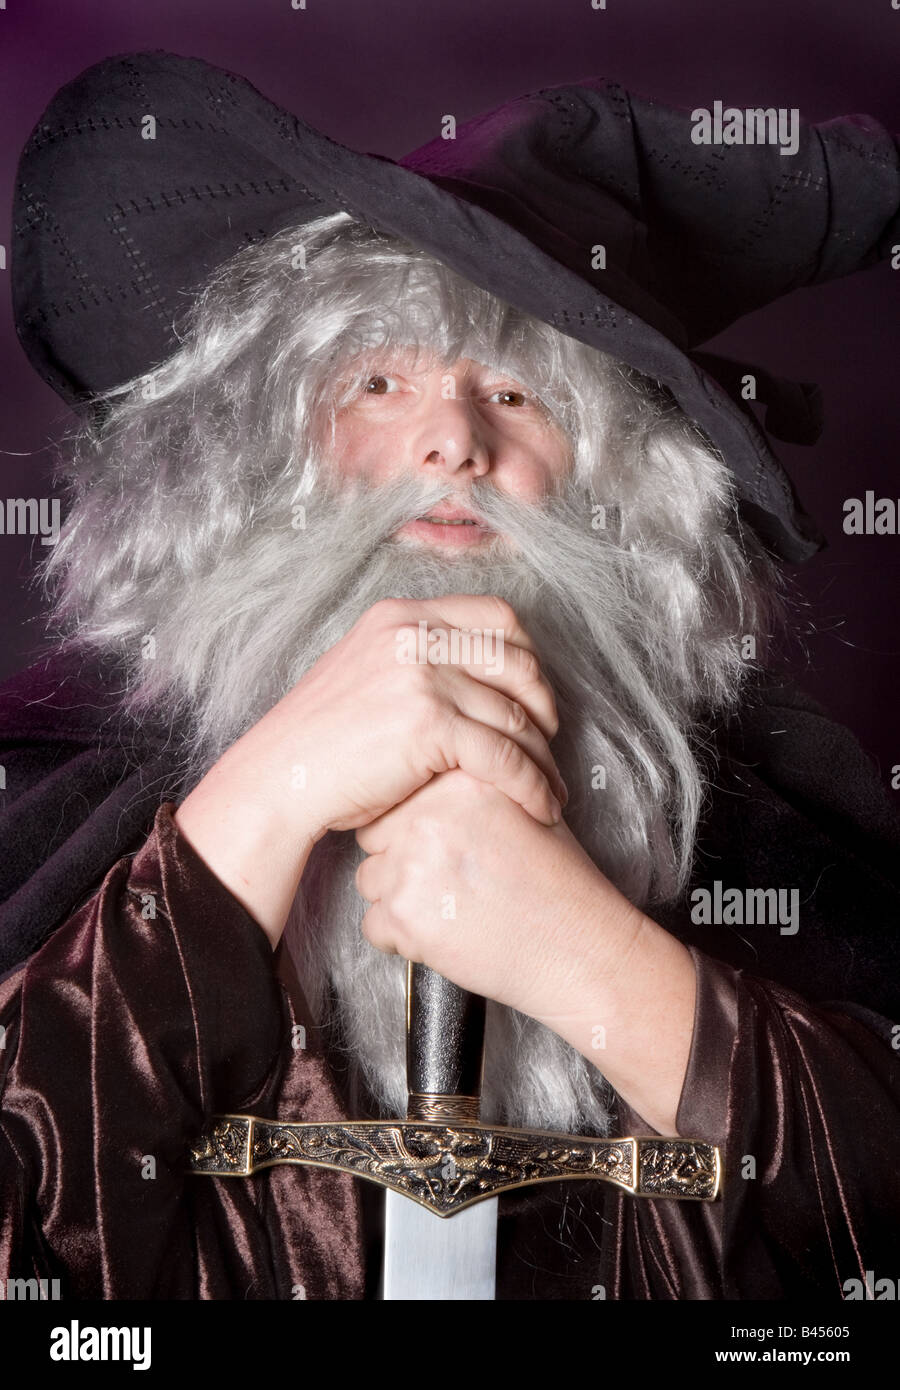 Halloween wizard leaning on a magical sword - Stock Image